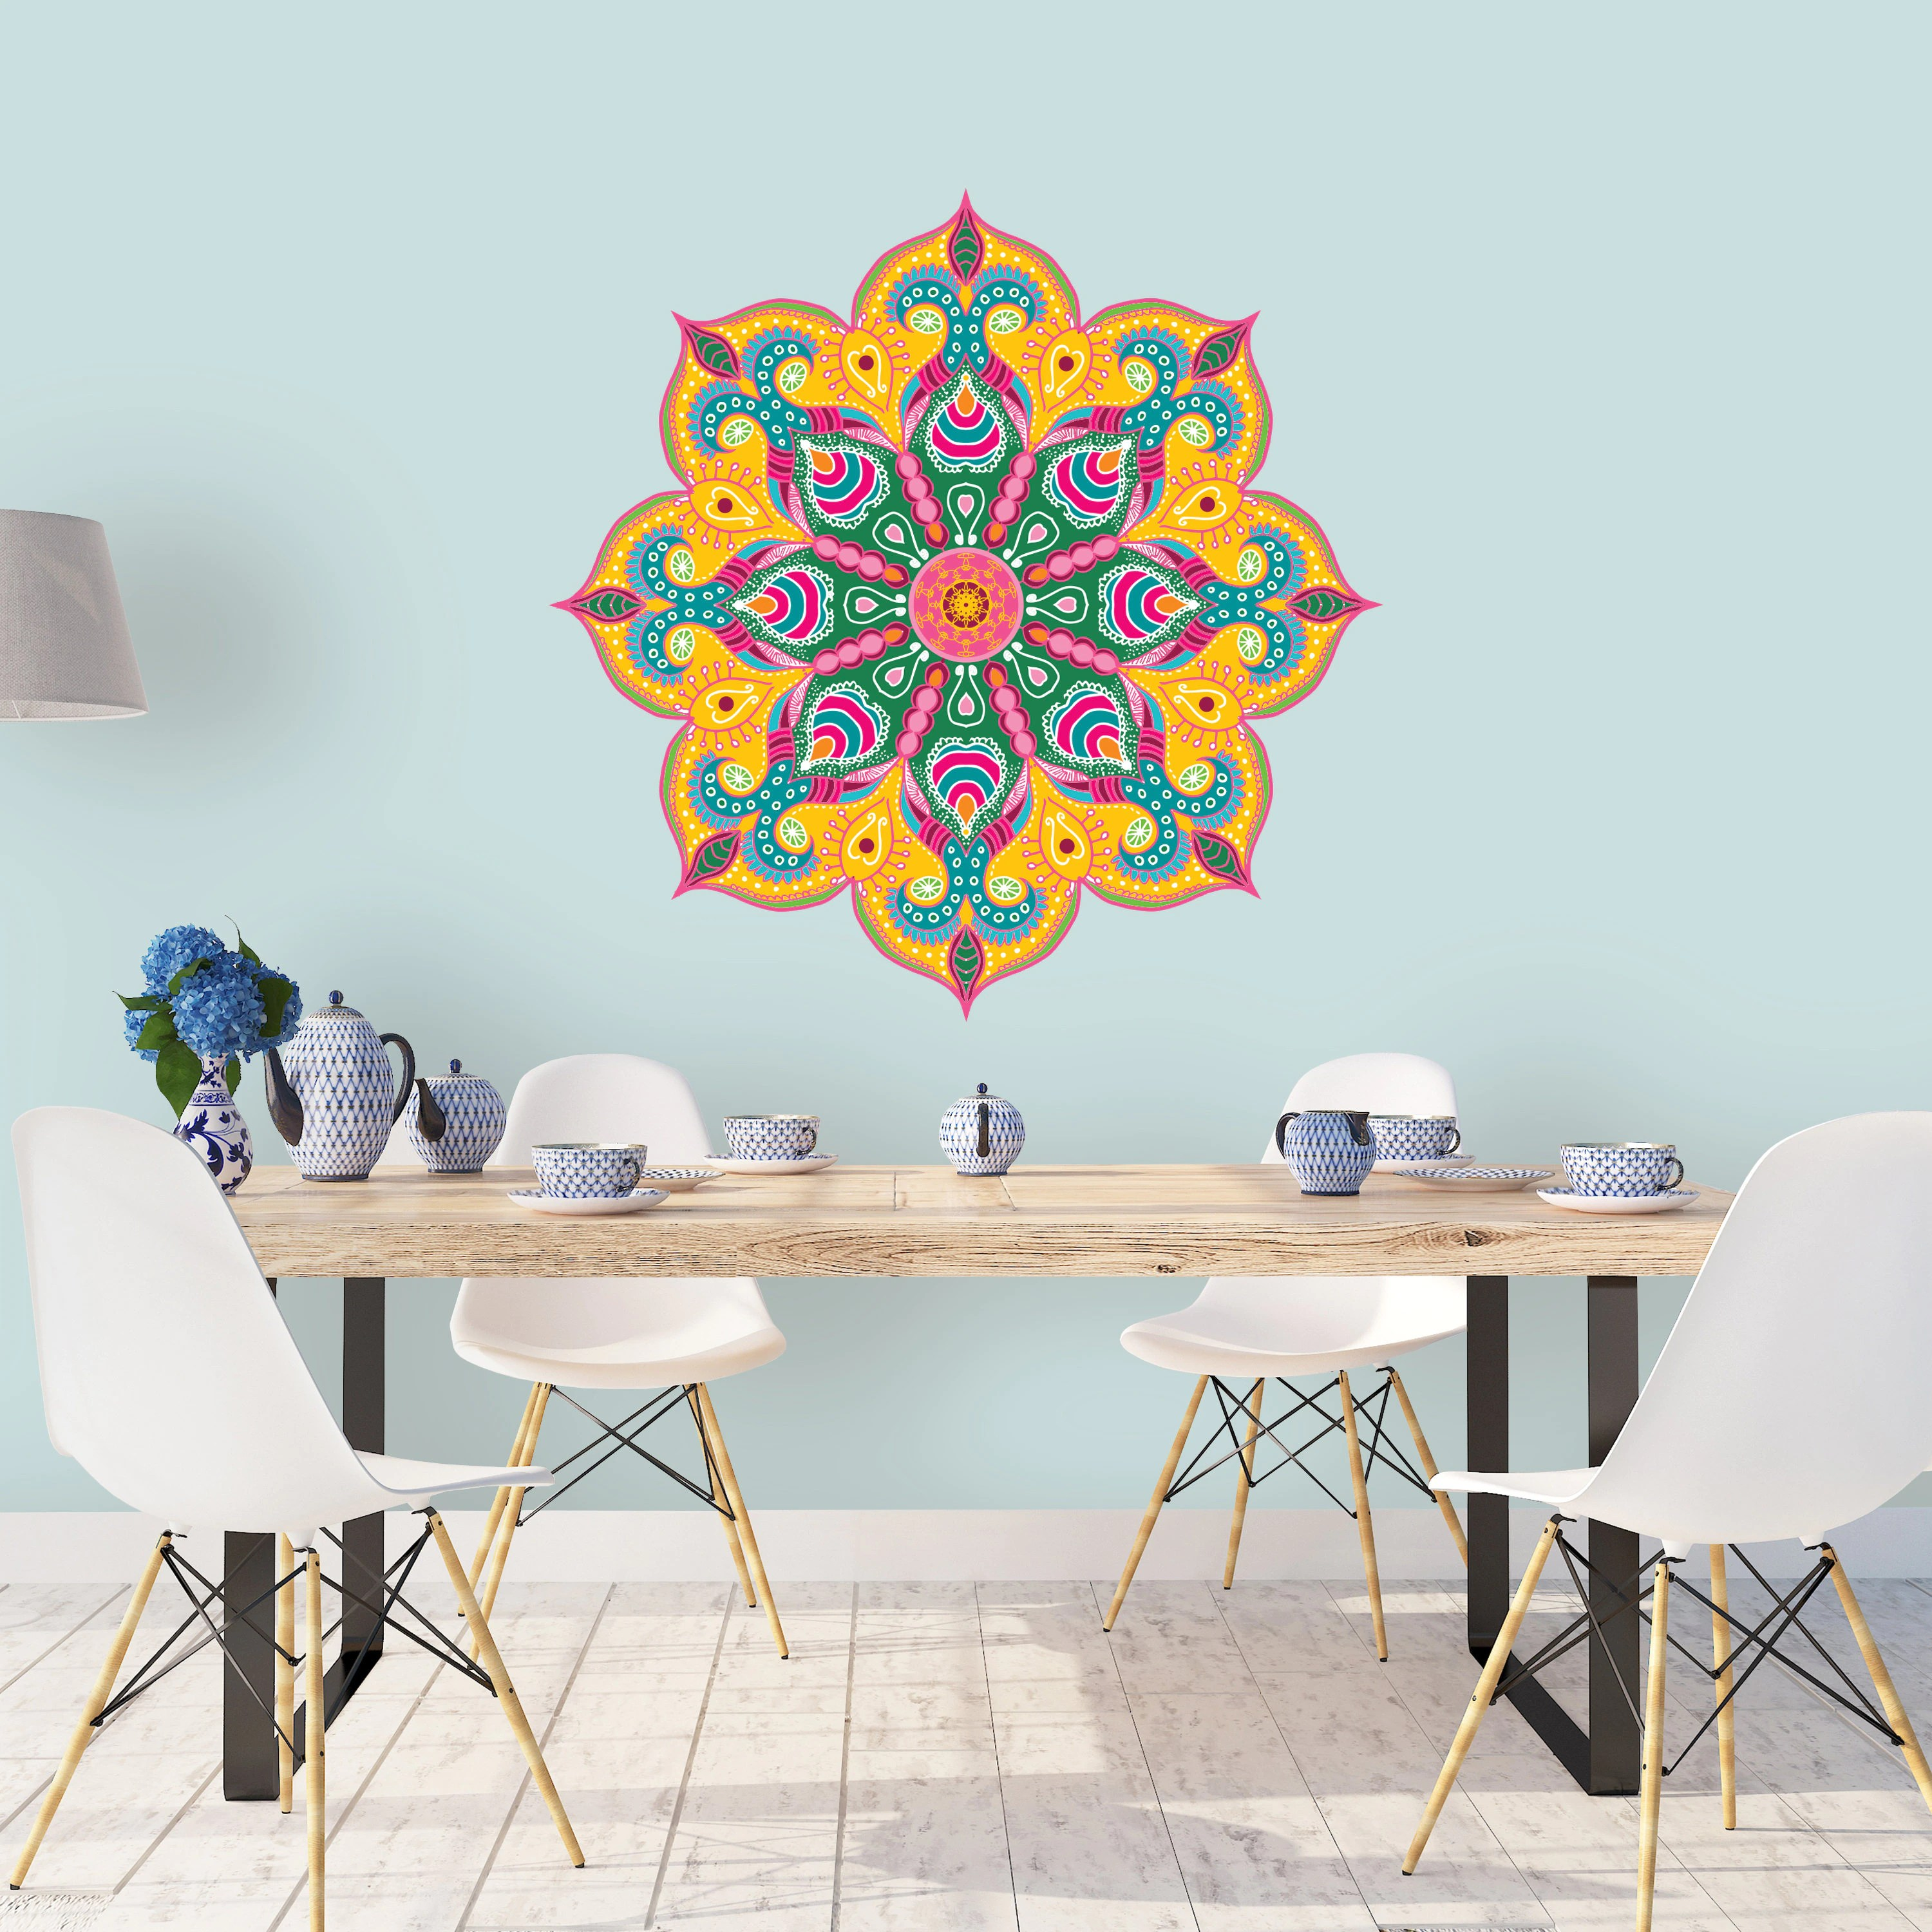 Pochoir Mandala Mural Boho Home Decor Yoga Studio Wall Art Art Mural Mandala Grand Mur Au Pochoir Pochoir Mandala Mandala Grand Pochoir Hippie Home Decor